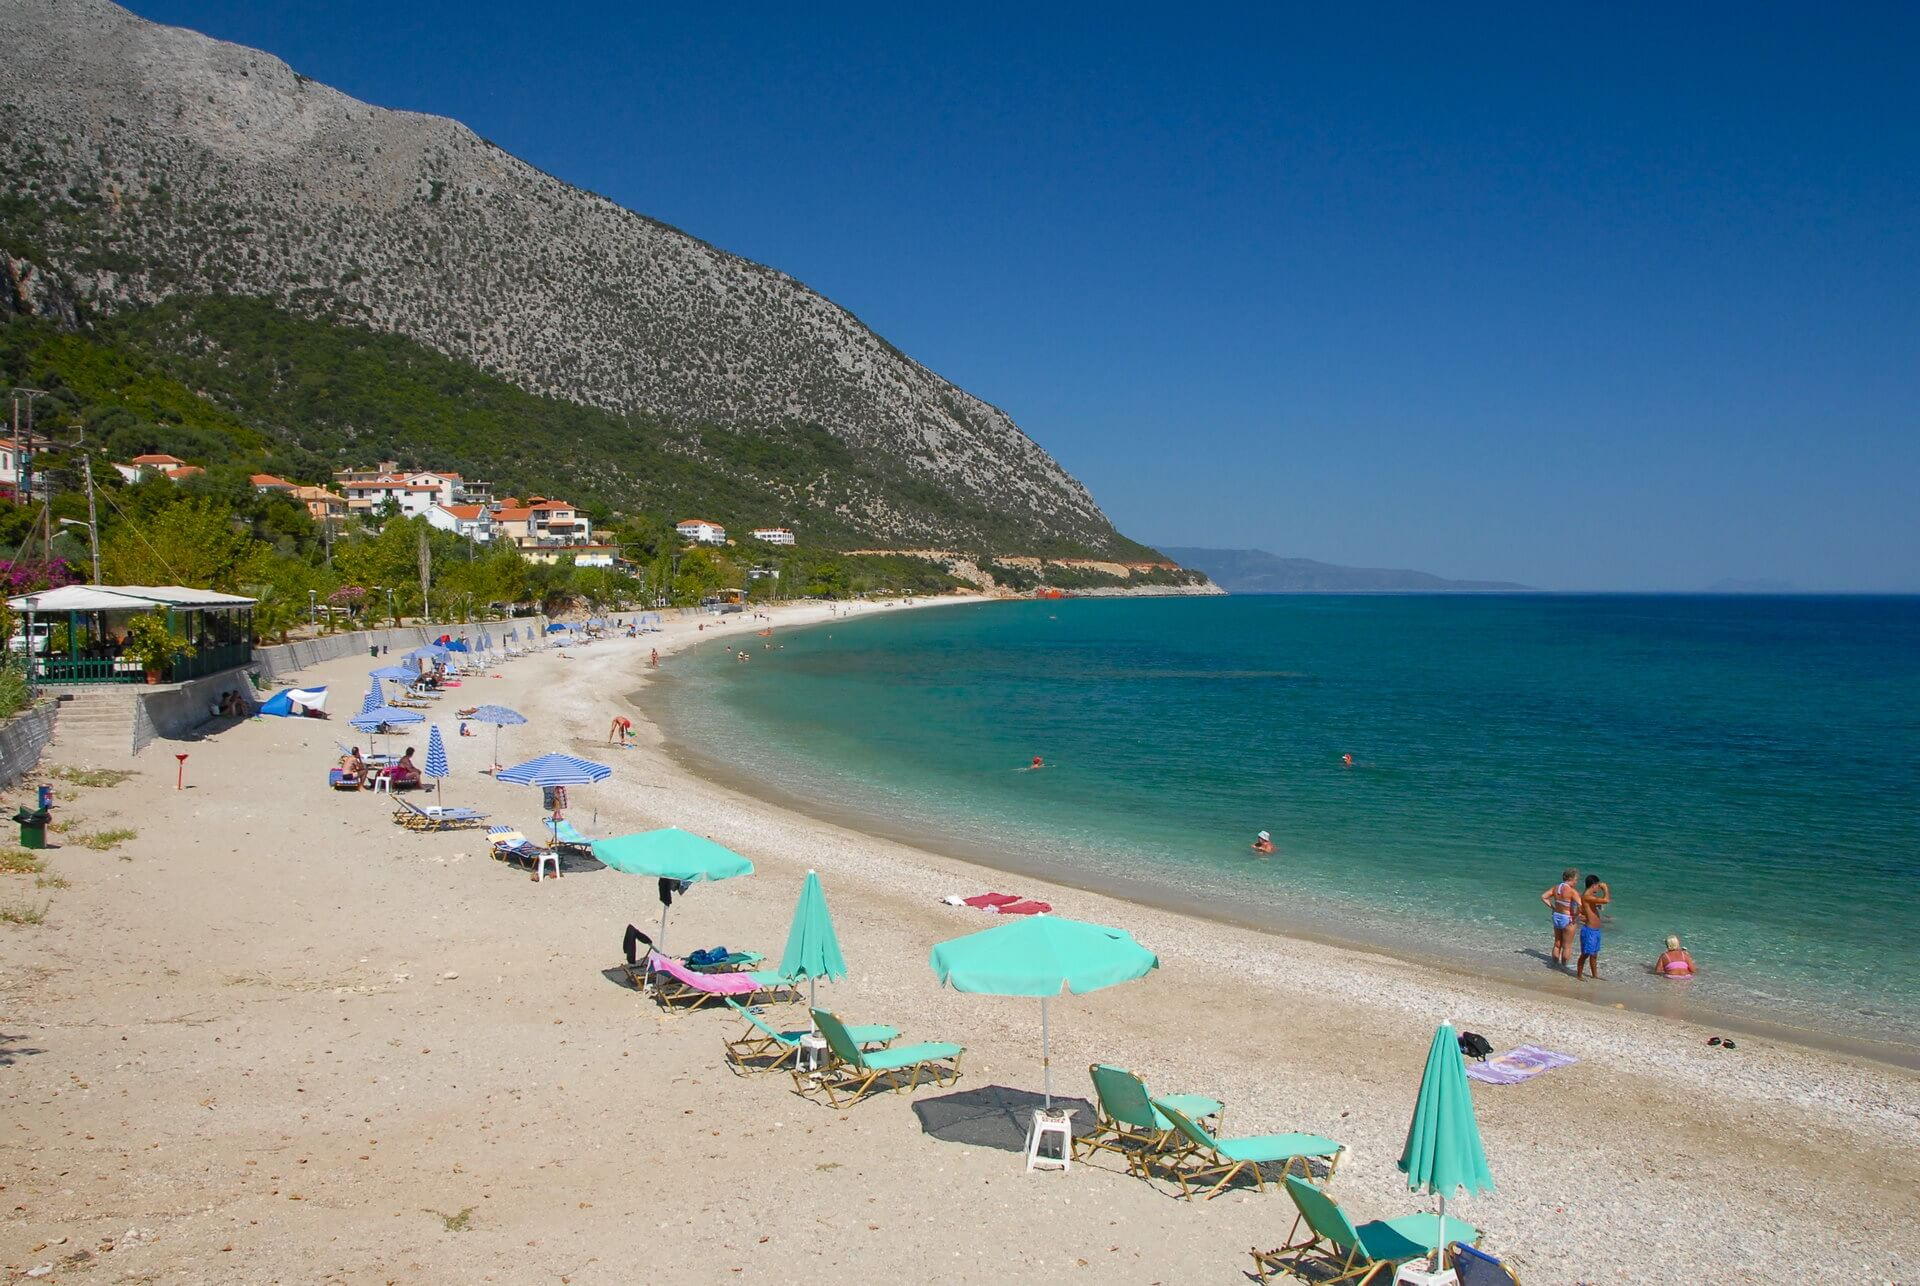 Ragia-Poros beach at Poros Kefalonia